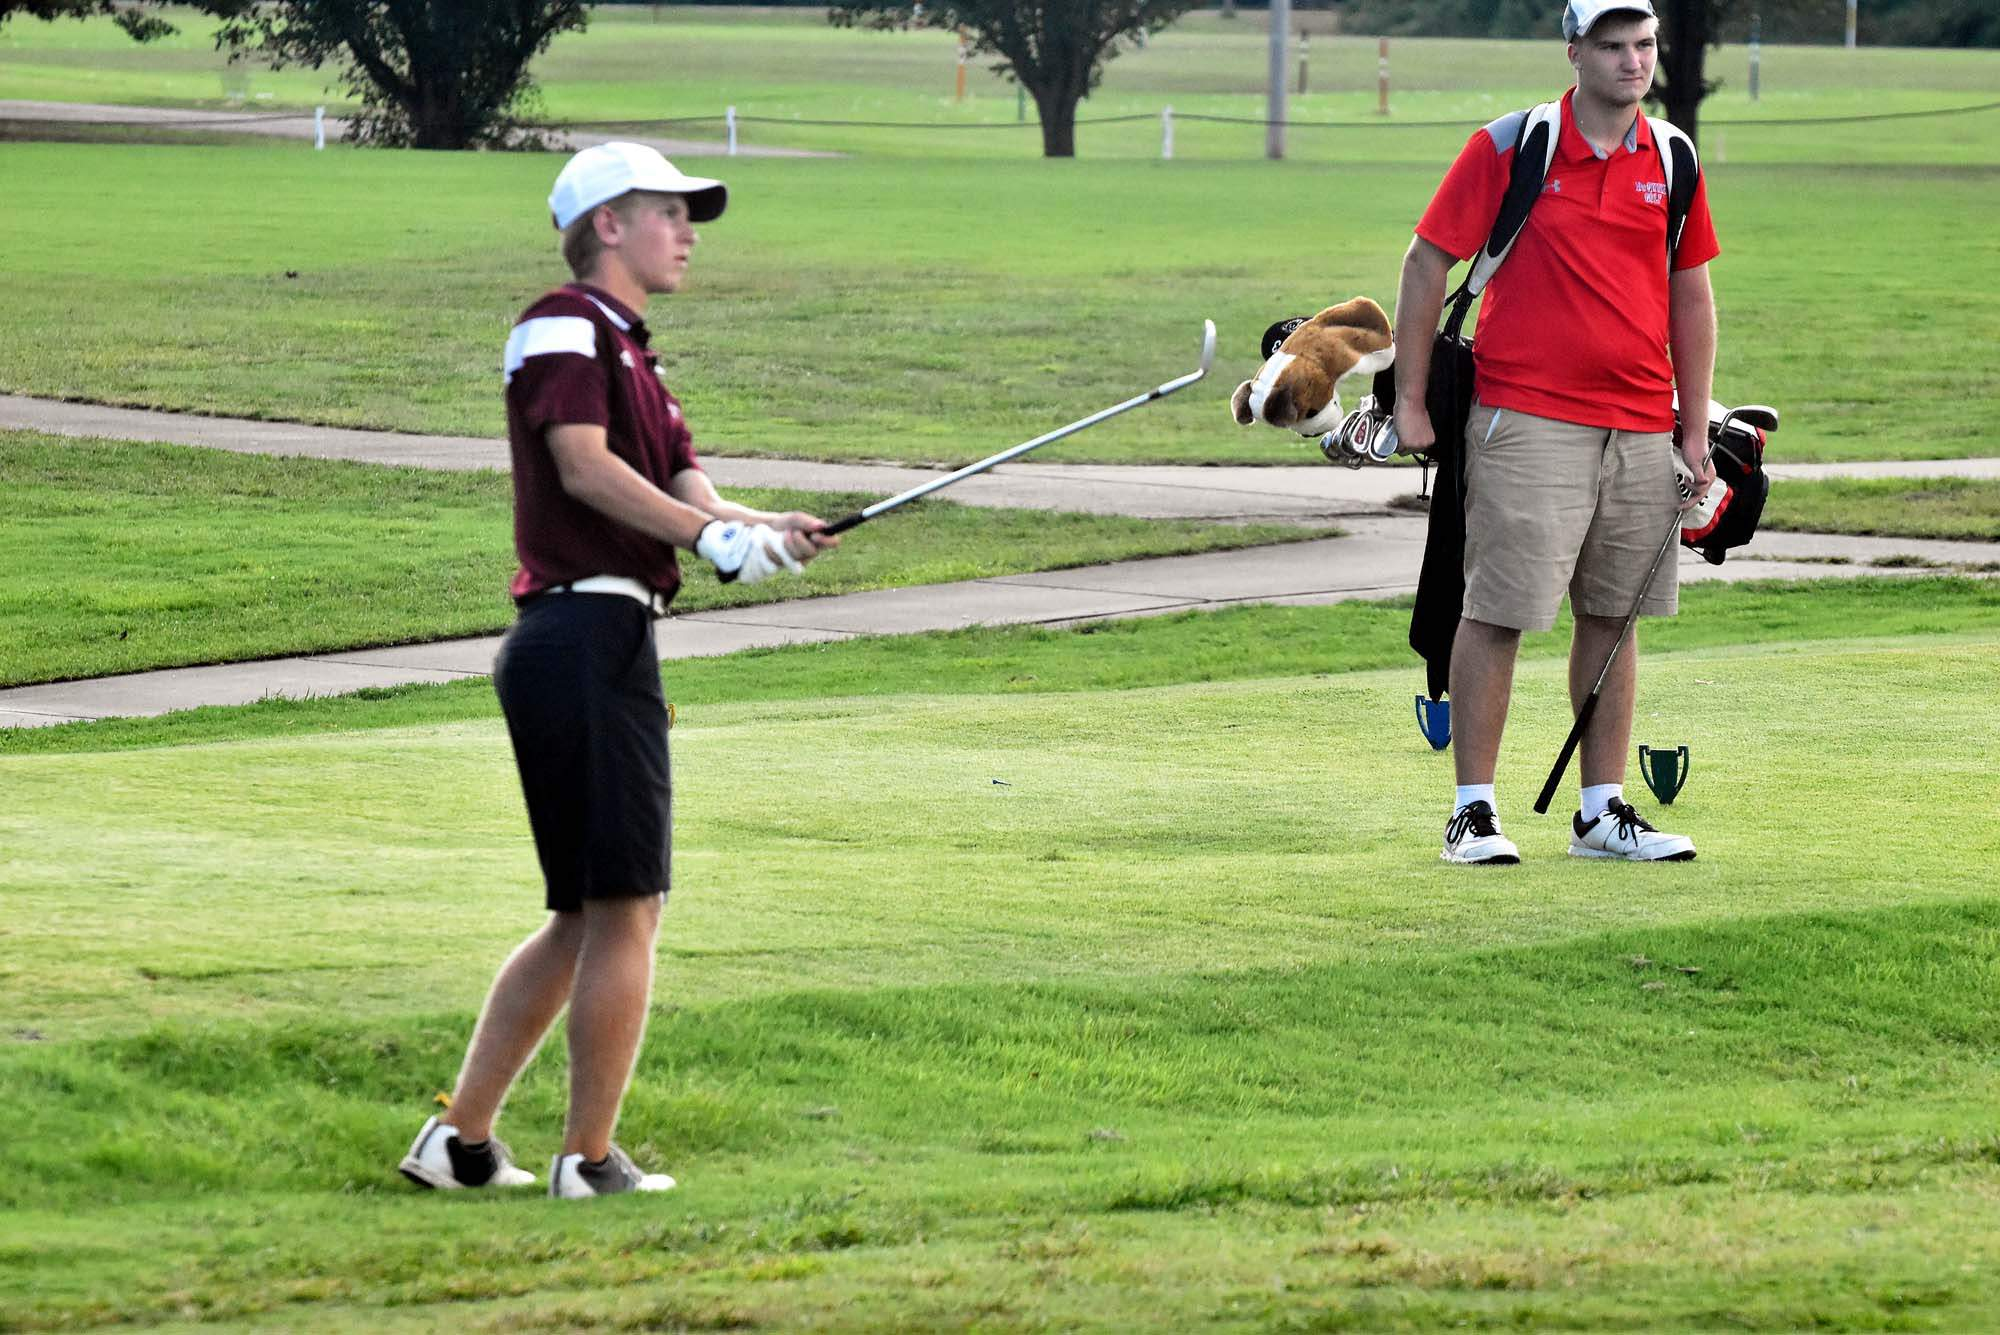 Benton High School golfer Jared Shaw chips from the fringe on the ninth hole at the Benton Country Club during a quadrangular match last week. Shaw stroked a 38 for the Rangers.